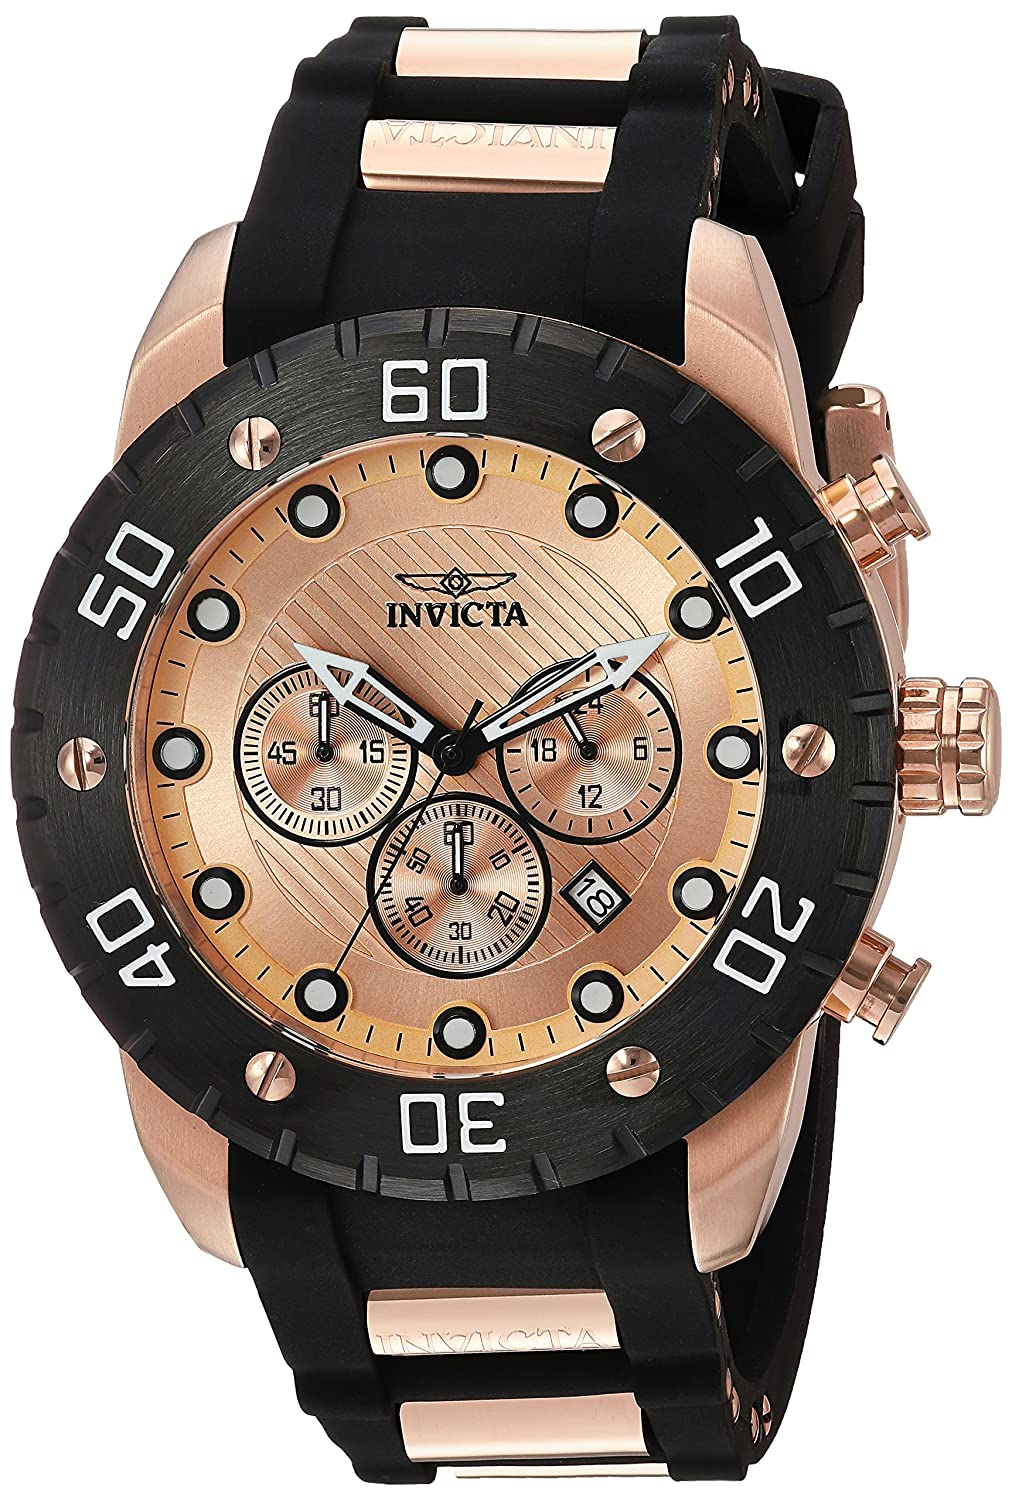 Amazon.com: Invicta Mens 20281 Pro Diver Analog Display Japanese Quartz Two Tone Watch: Watches